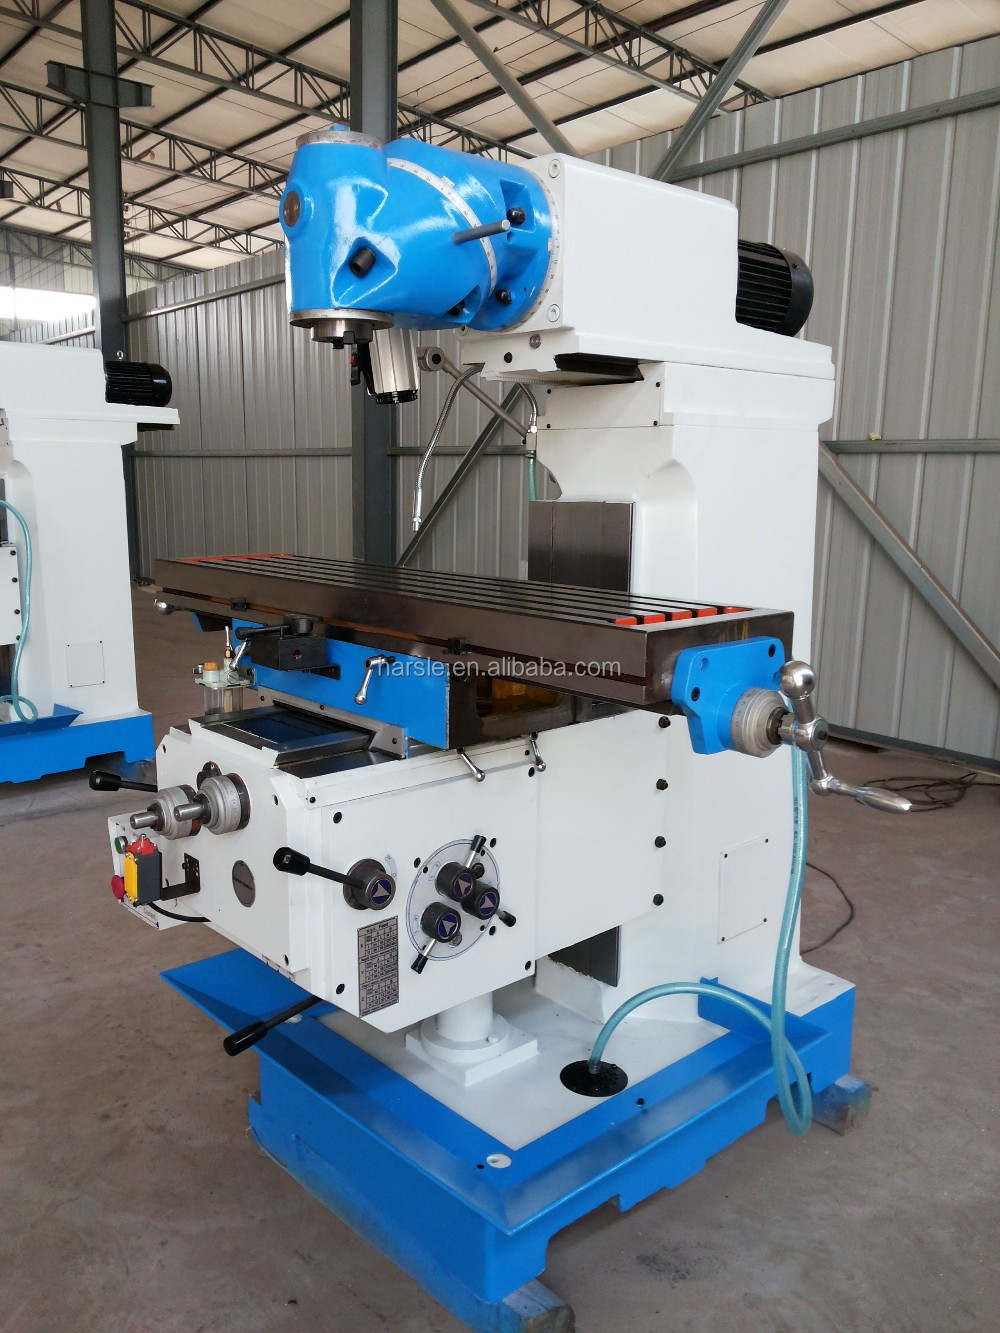 Horizontal Milling Machines Bring High-Production Capabilities to Valley Tool